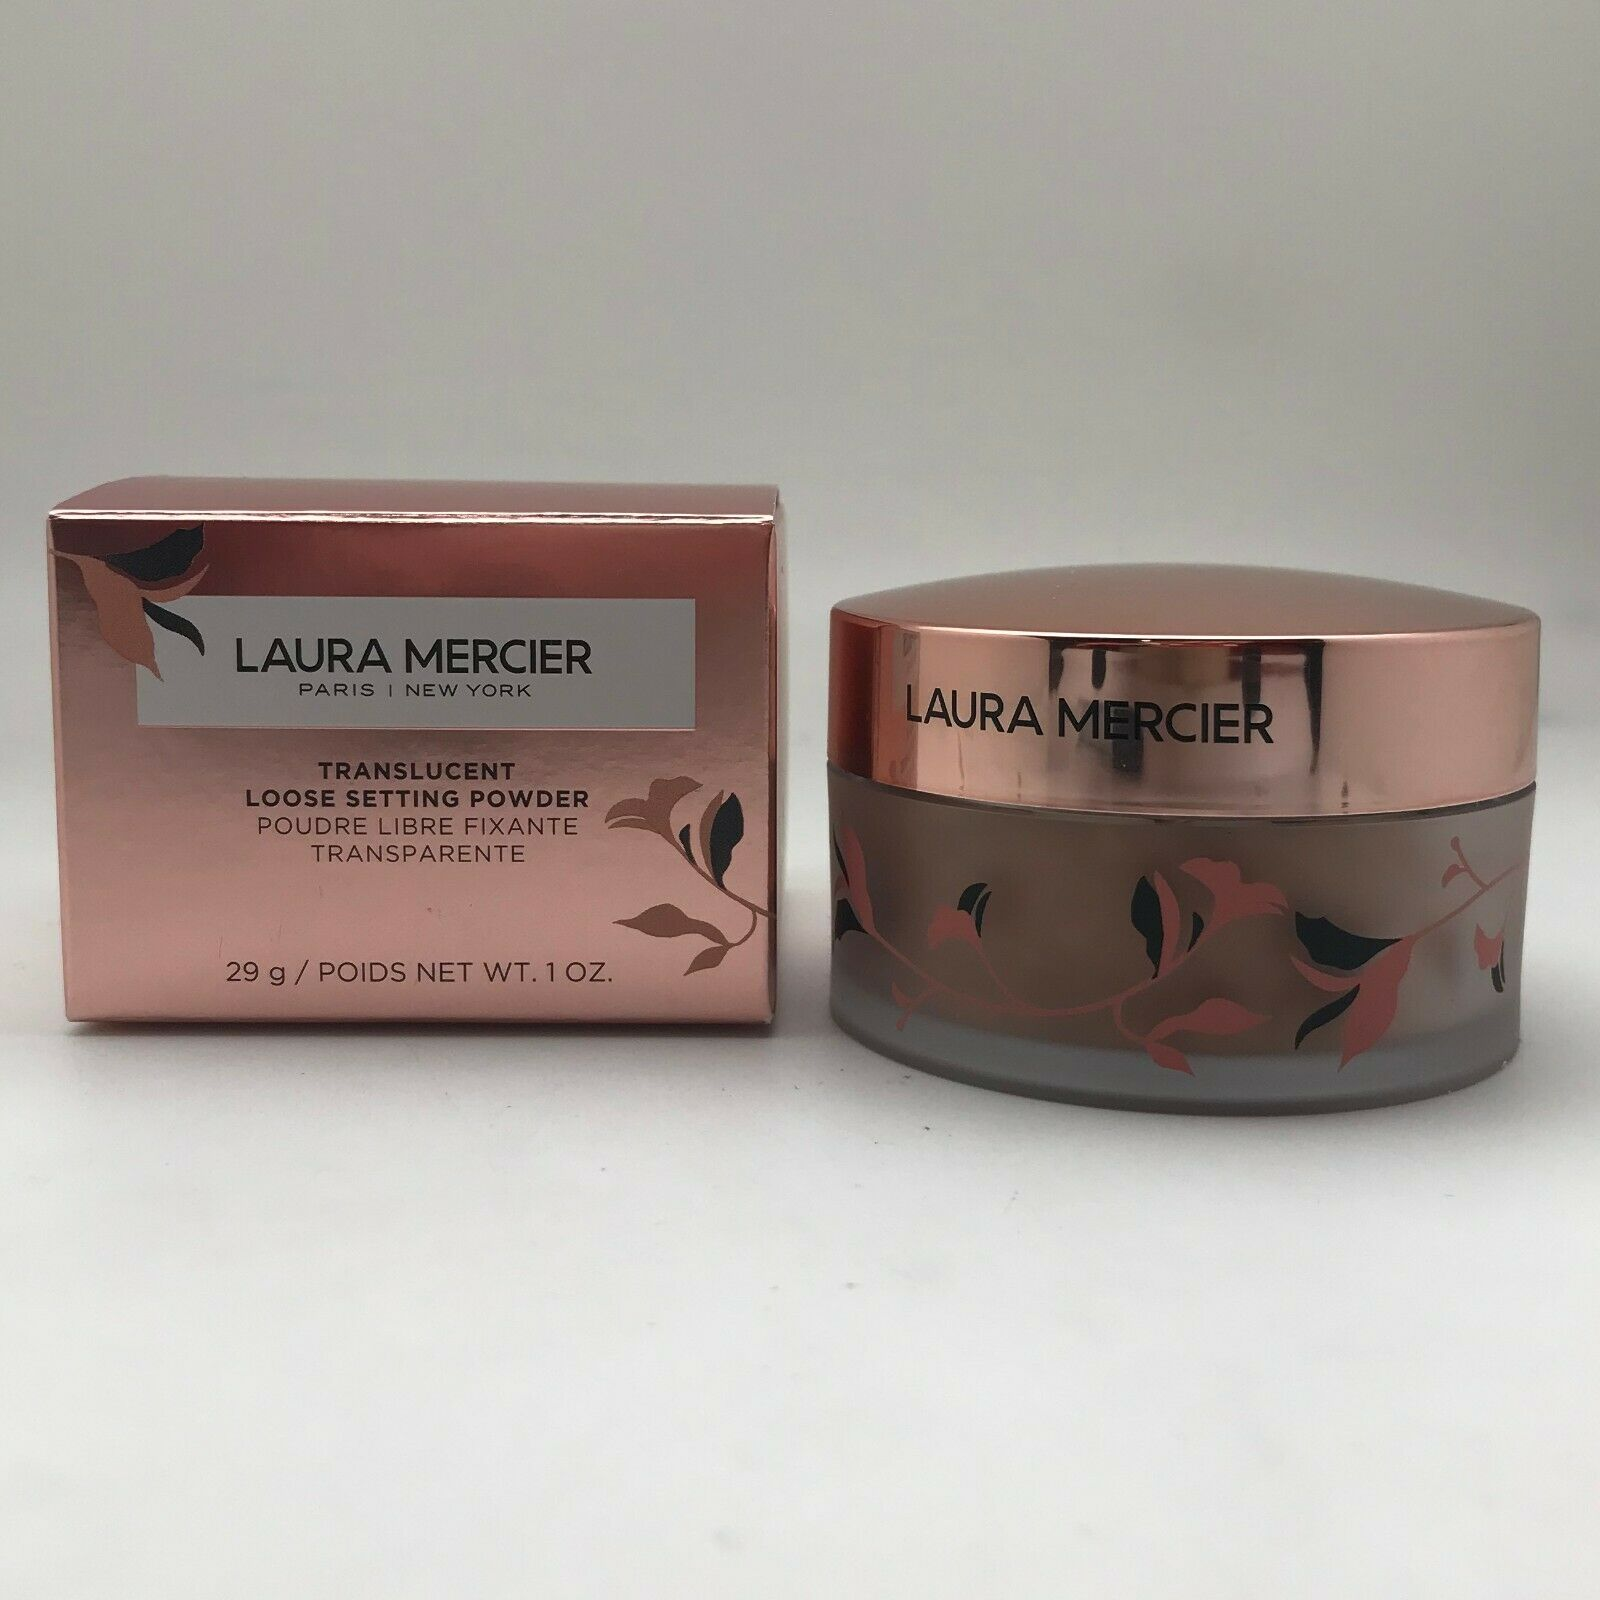 Laura Mercier Translucent Loose Setting Powder Medium Deep 2